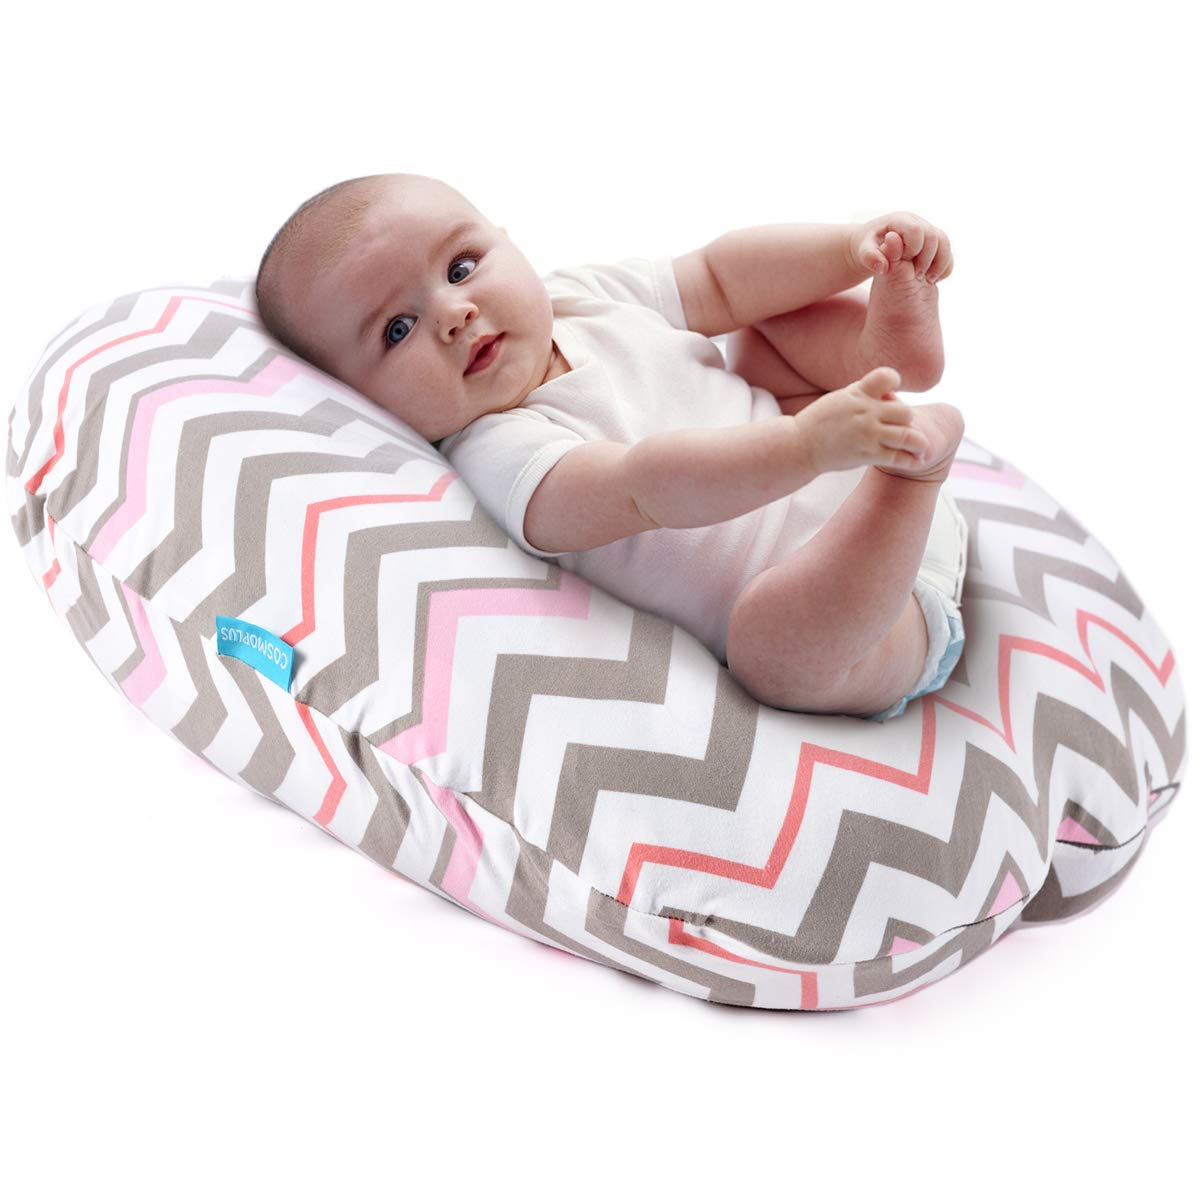 Boritar Baby Lounger Cover Removable Slipcover for Newborn Lounger Super Soft Minky Snug Fitted Grey Arrow Printed with Dotted Backing